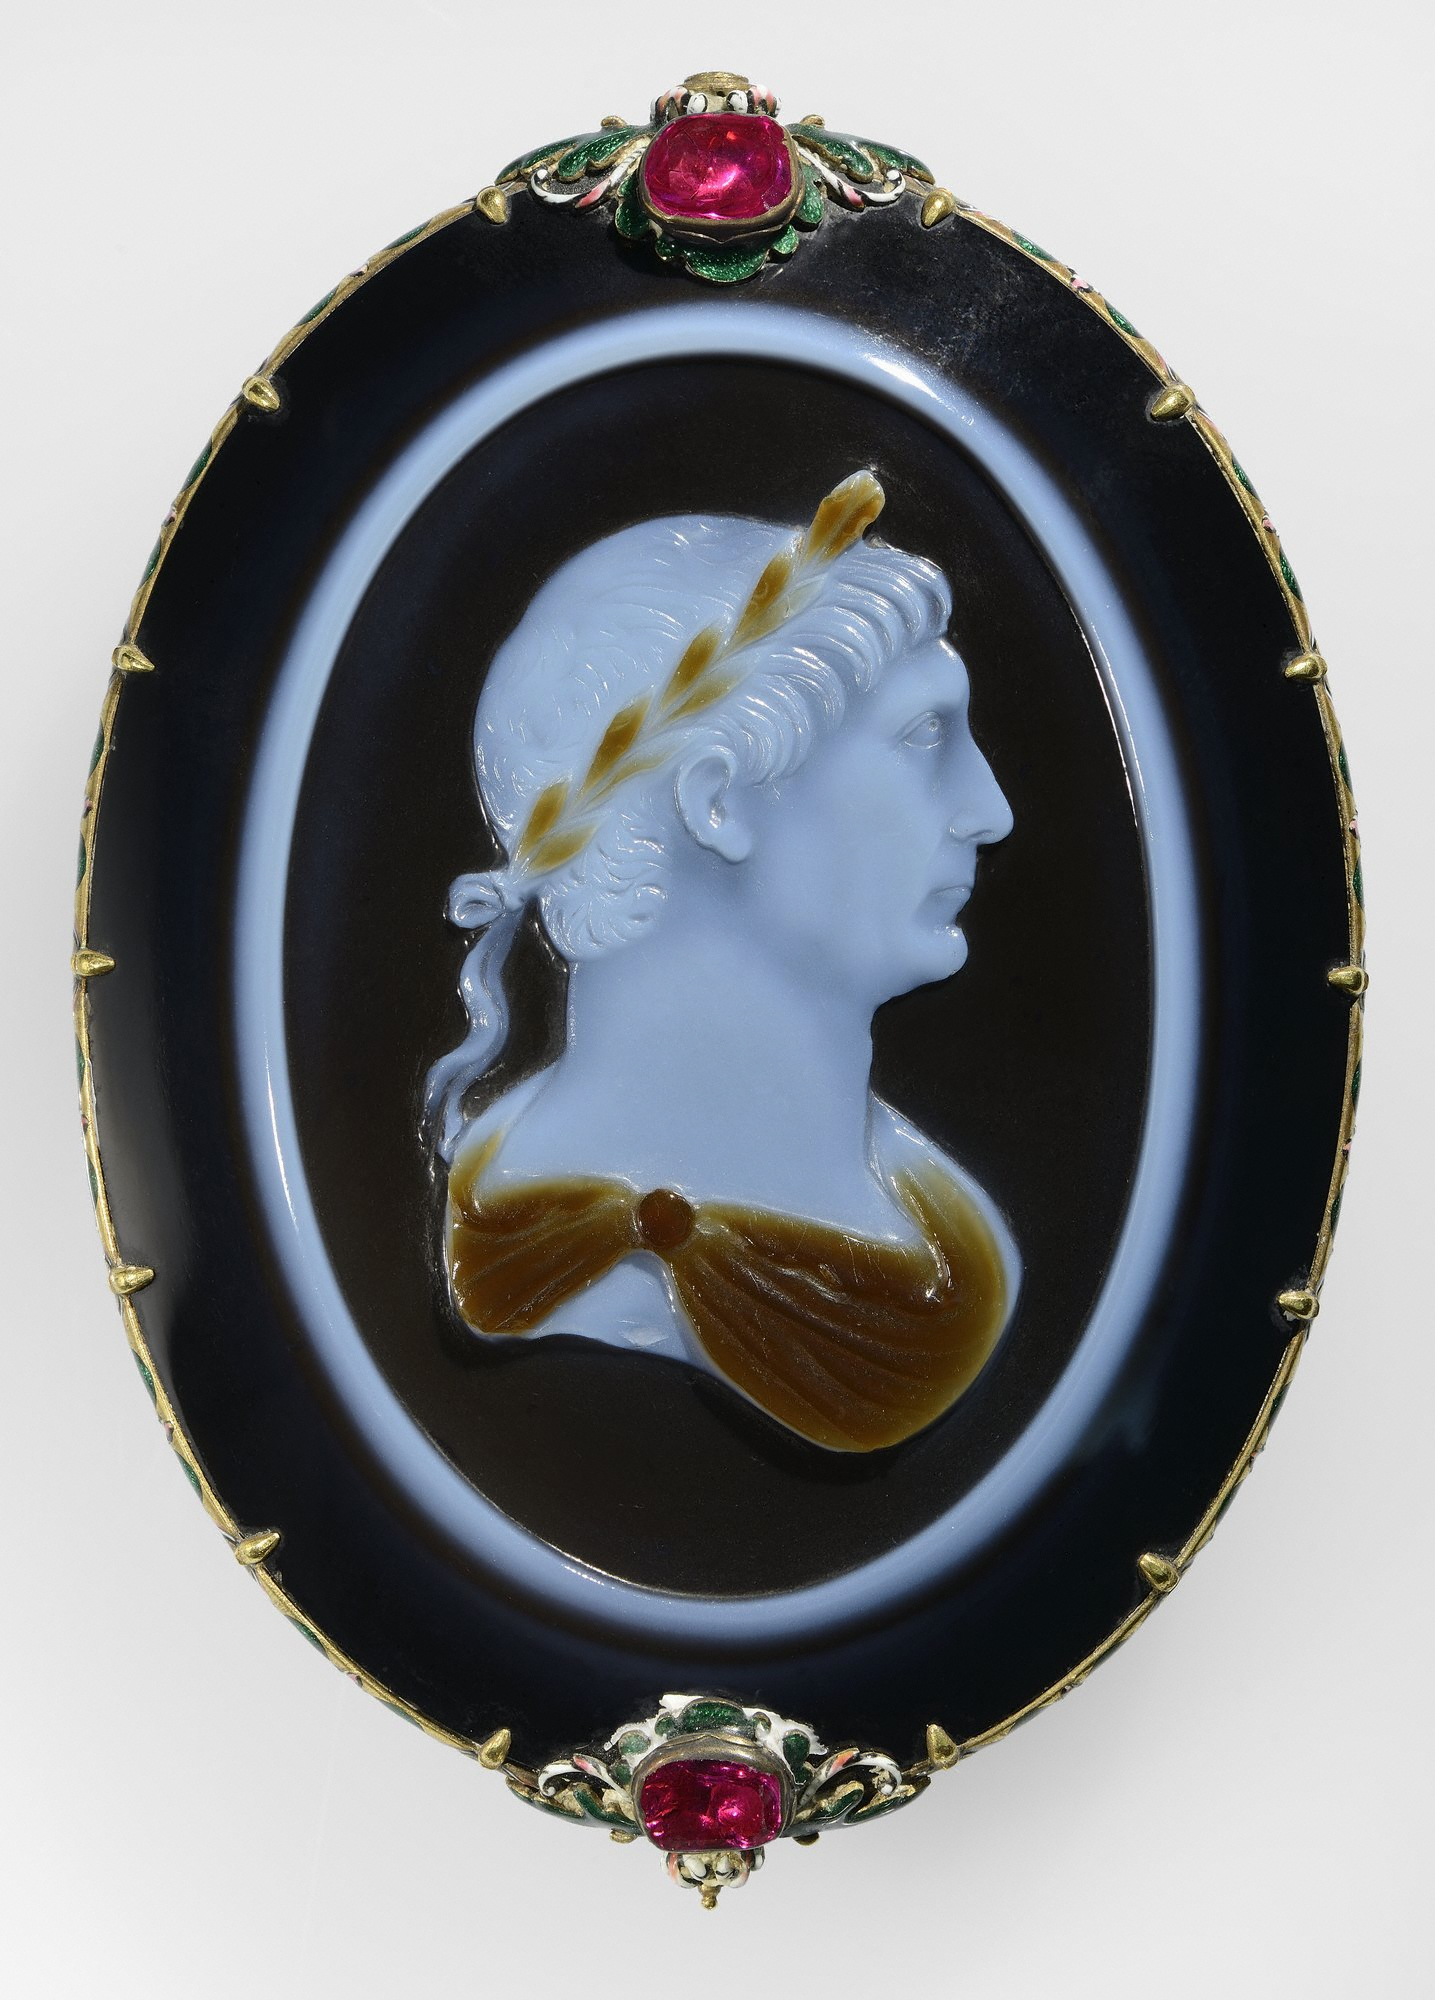 6. Cameo of Emperor Trajan, Roman, about 100 A.D. Sardonyx set in a 17th century gold, enamel and ruby mount. Cabinet de Médailes of the Bibliothèque nationale de France, Département des monnaies et antiques, Paris.